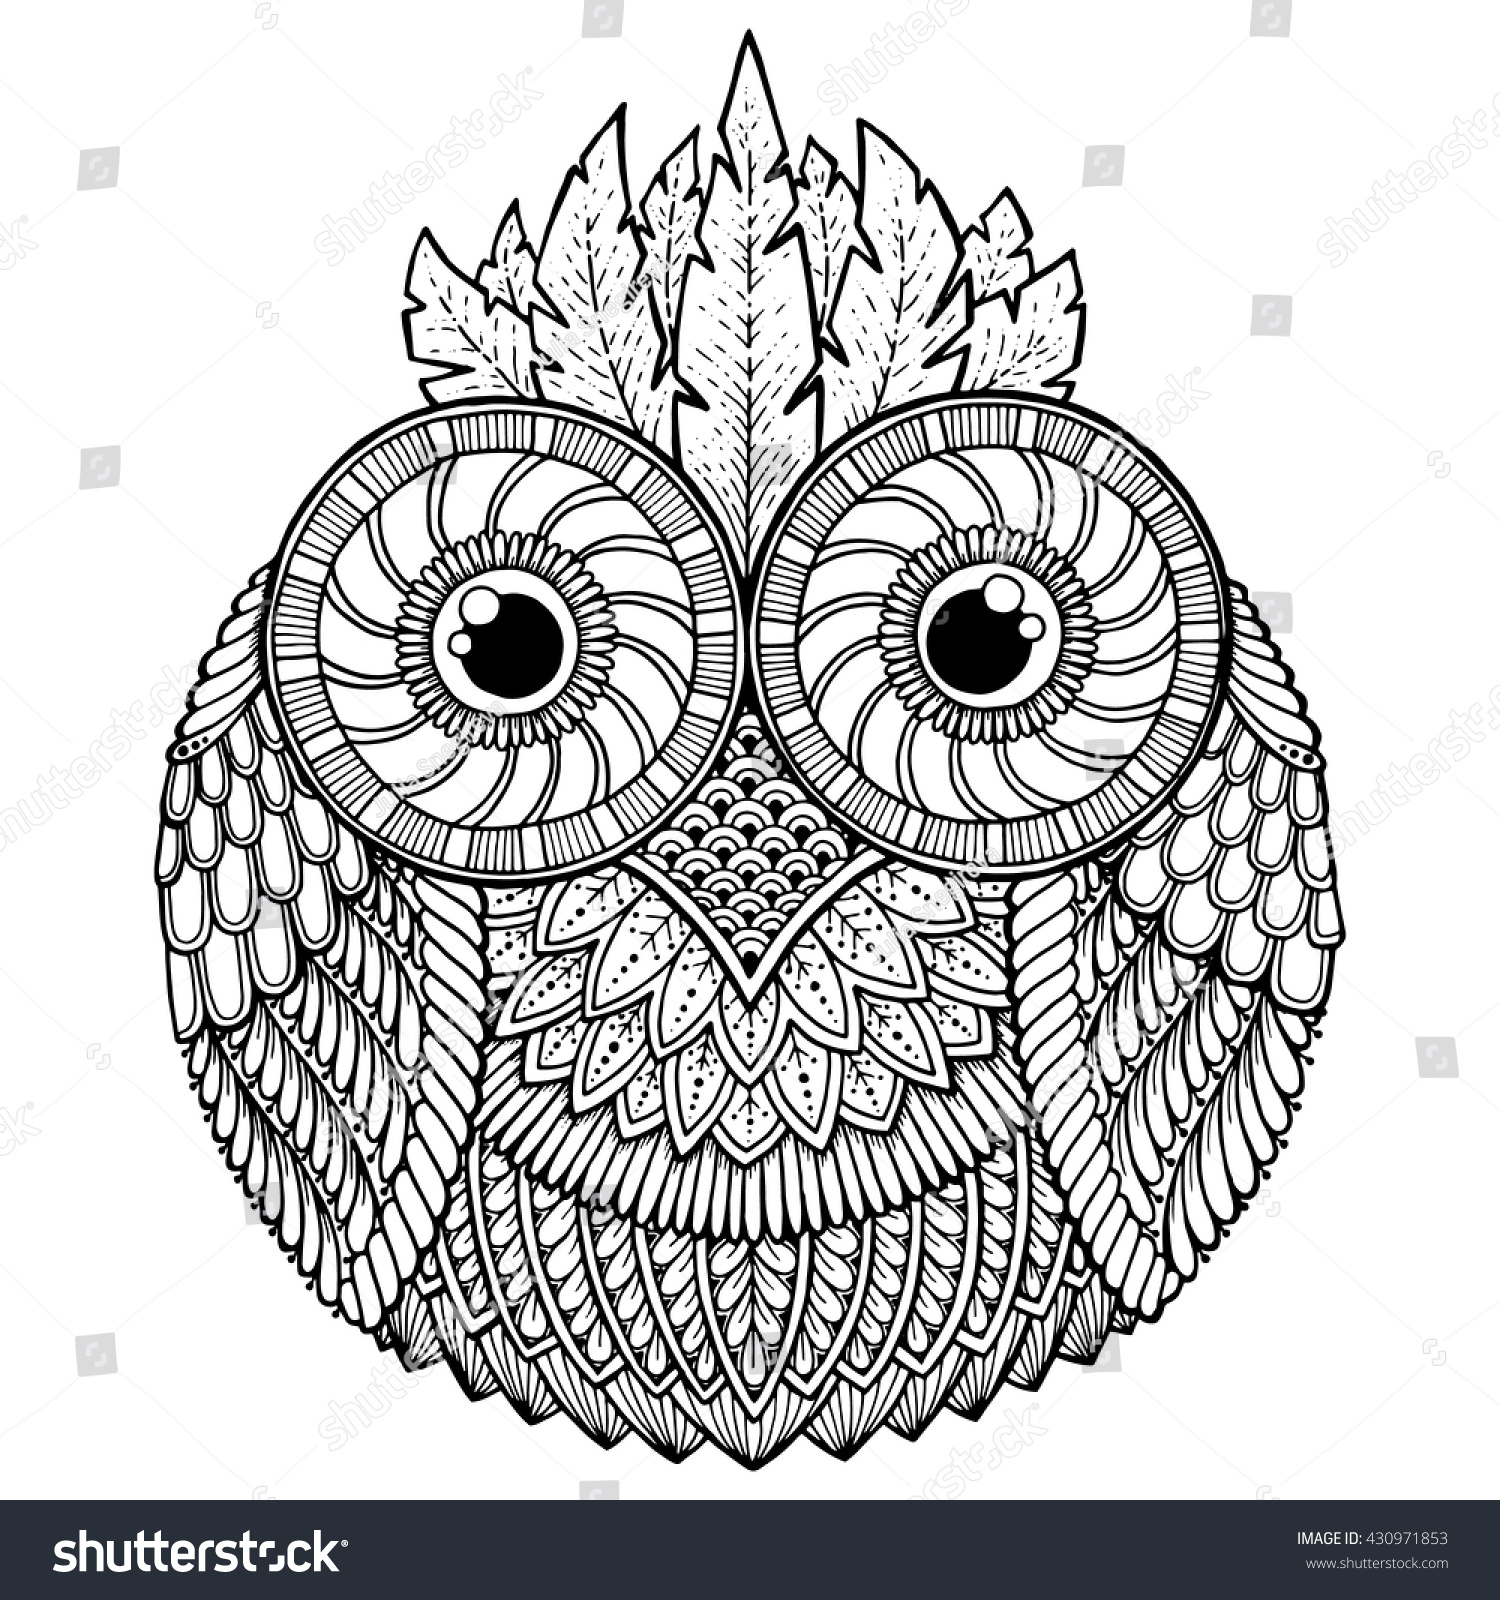 aztec owl coloring pages - photo#11